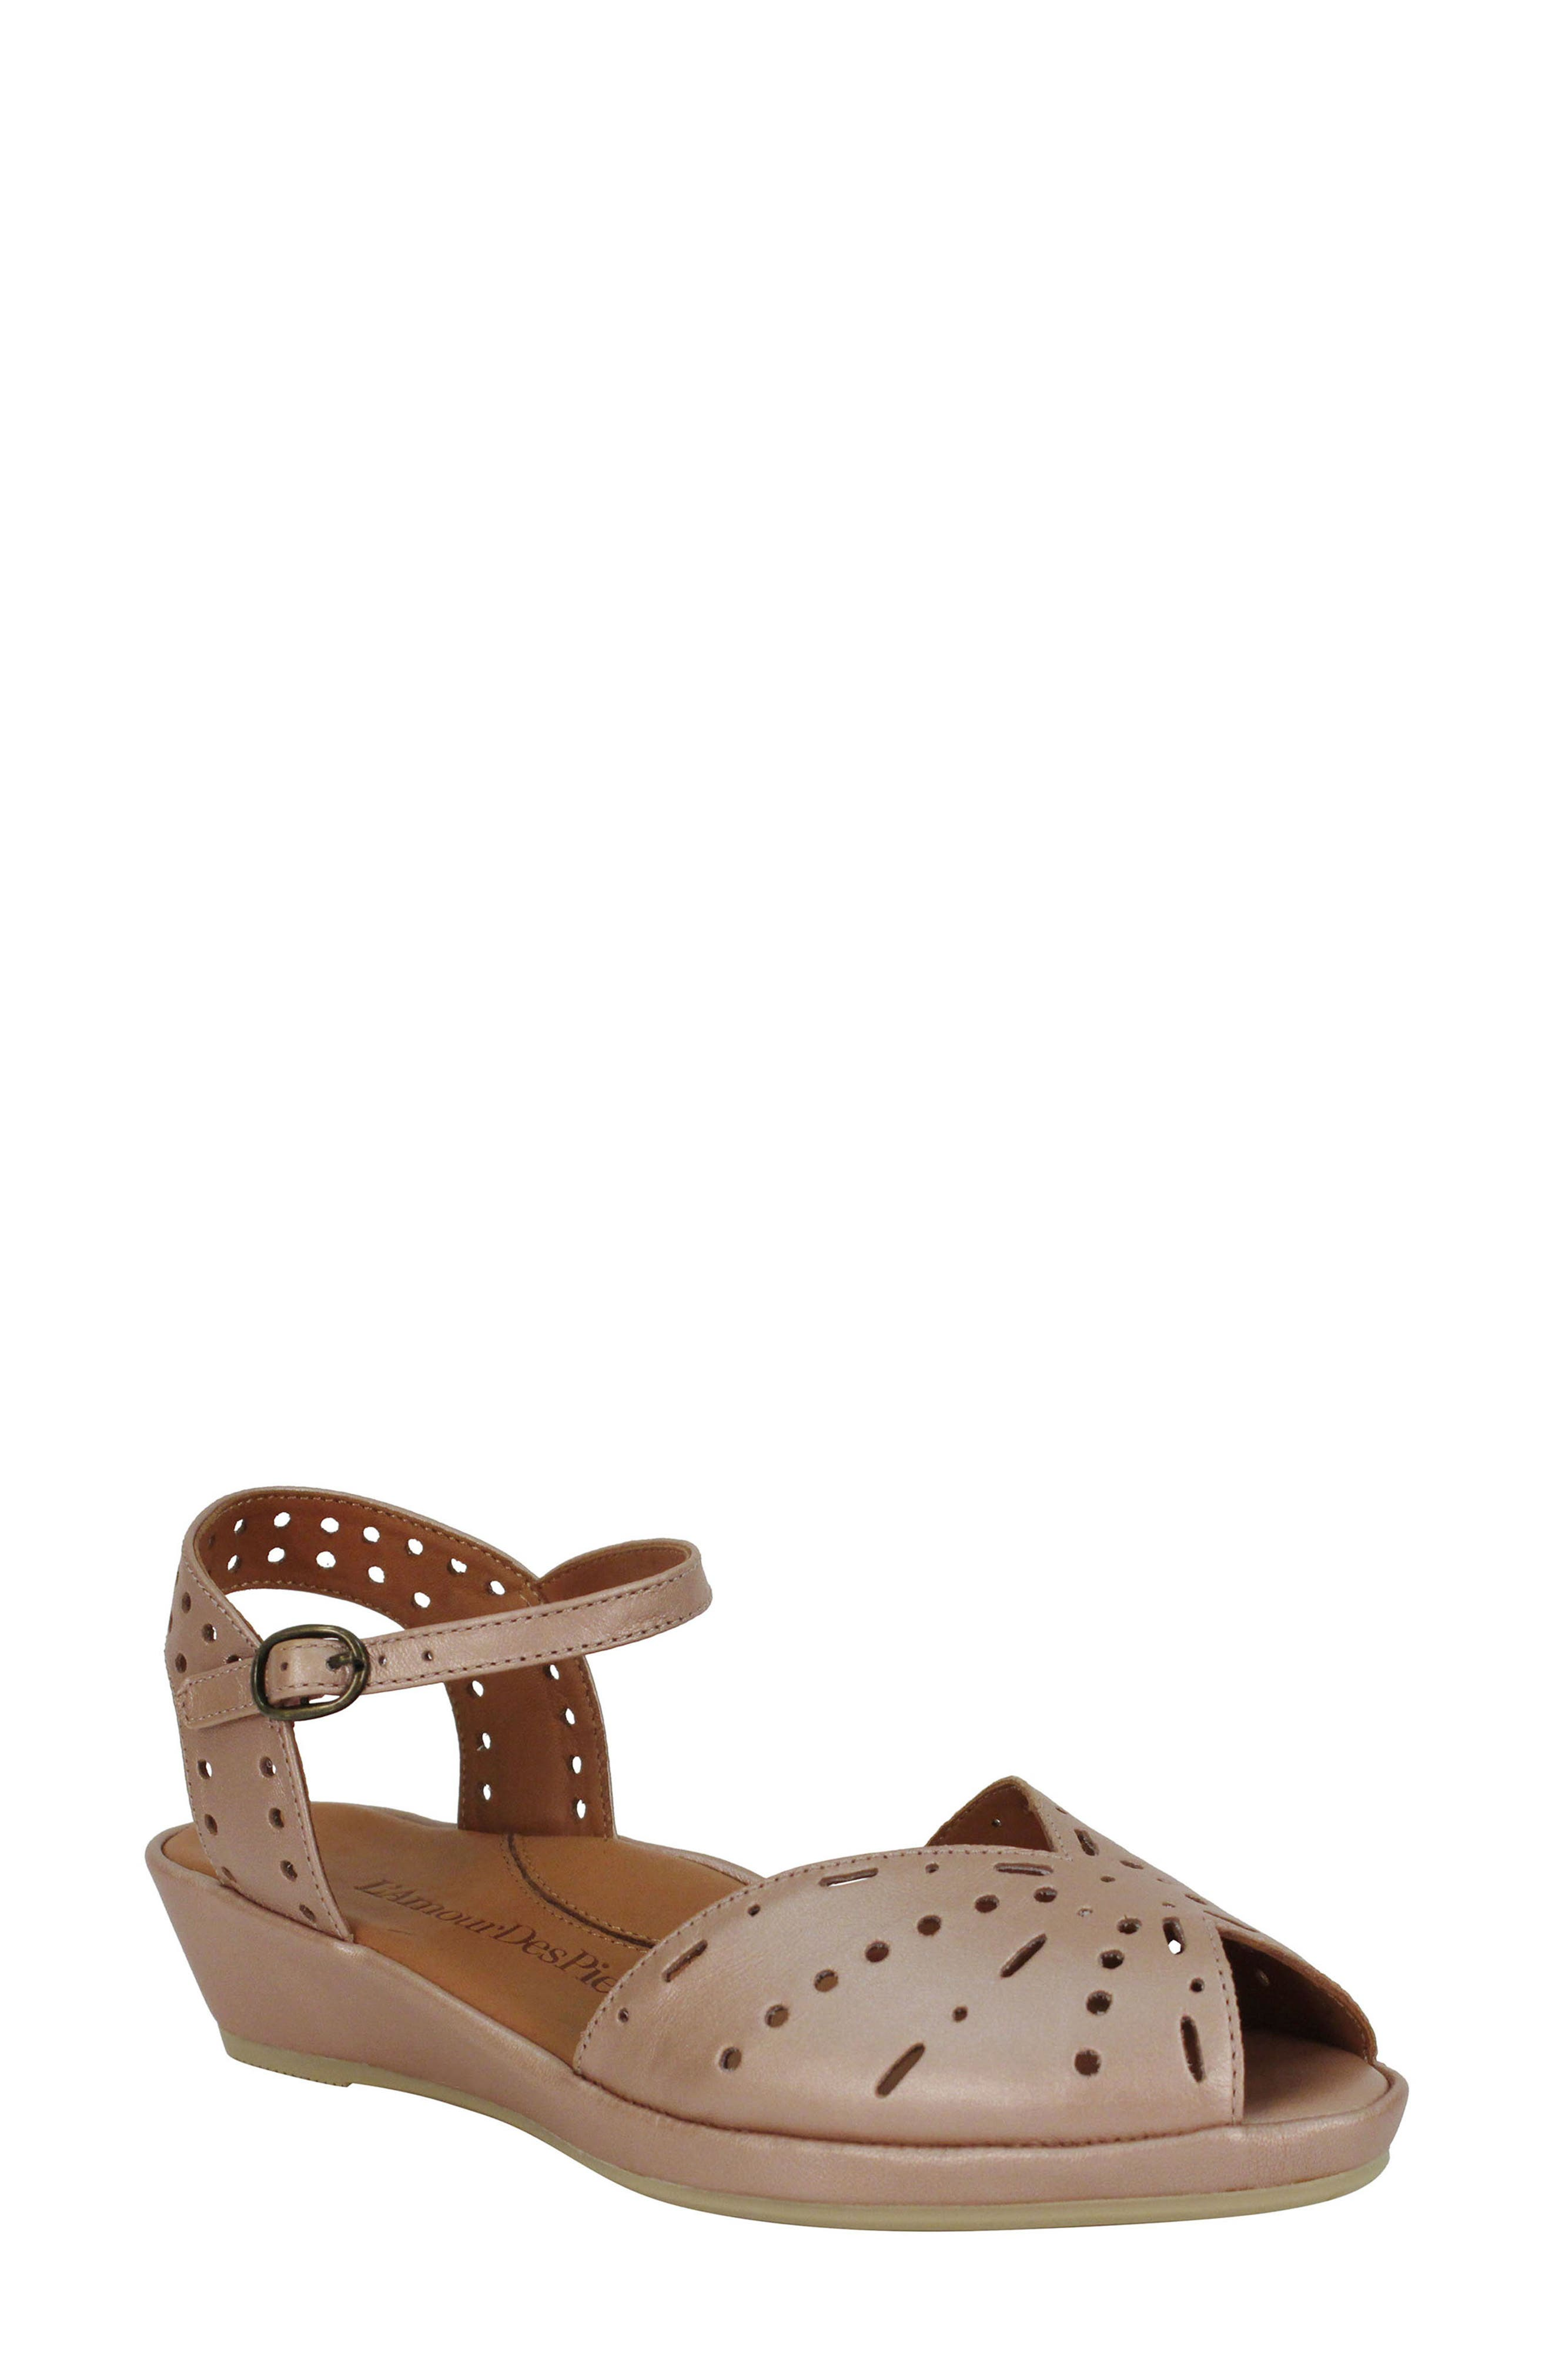 Suave cutouts and a slim ankle strap add eye-catching sophistication to a well-cushioned sandal set on a streamlined wedge. Style Name:L\\\'Amour Des Pieds \\\'Brenn\\\' Ankle Strap Sandal (Women). Style Number: 1136995 3. Available in stores.